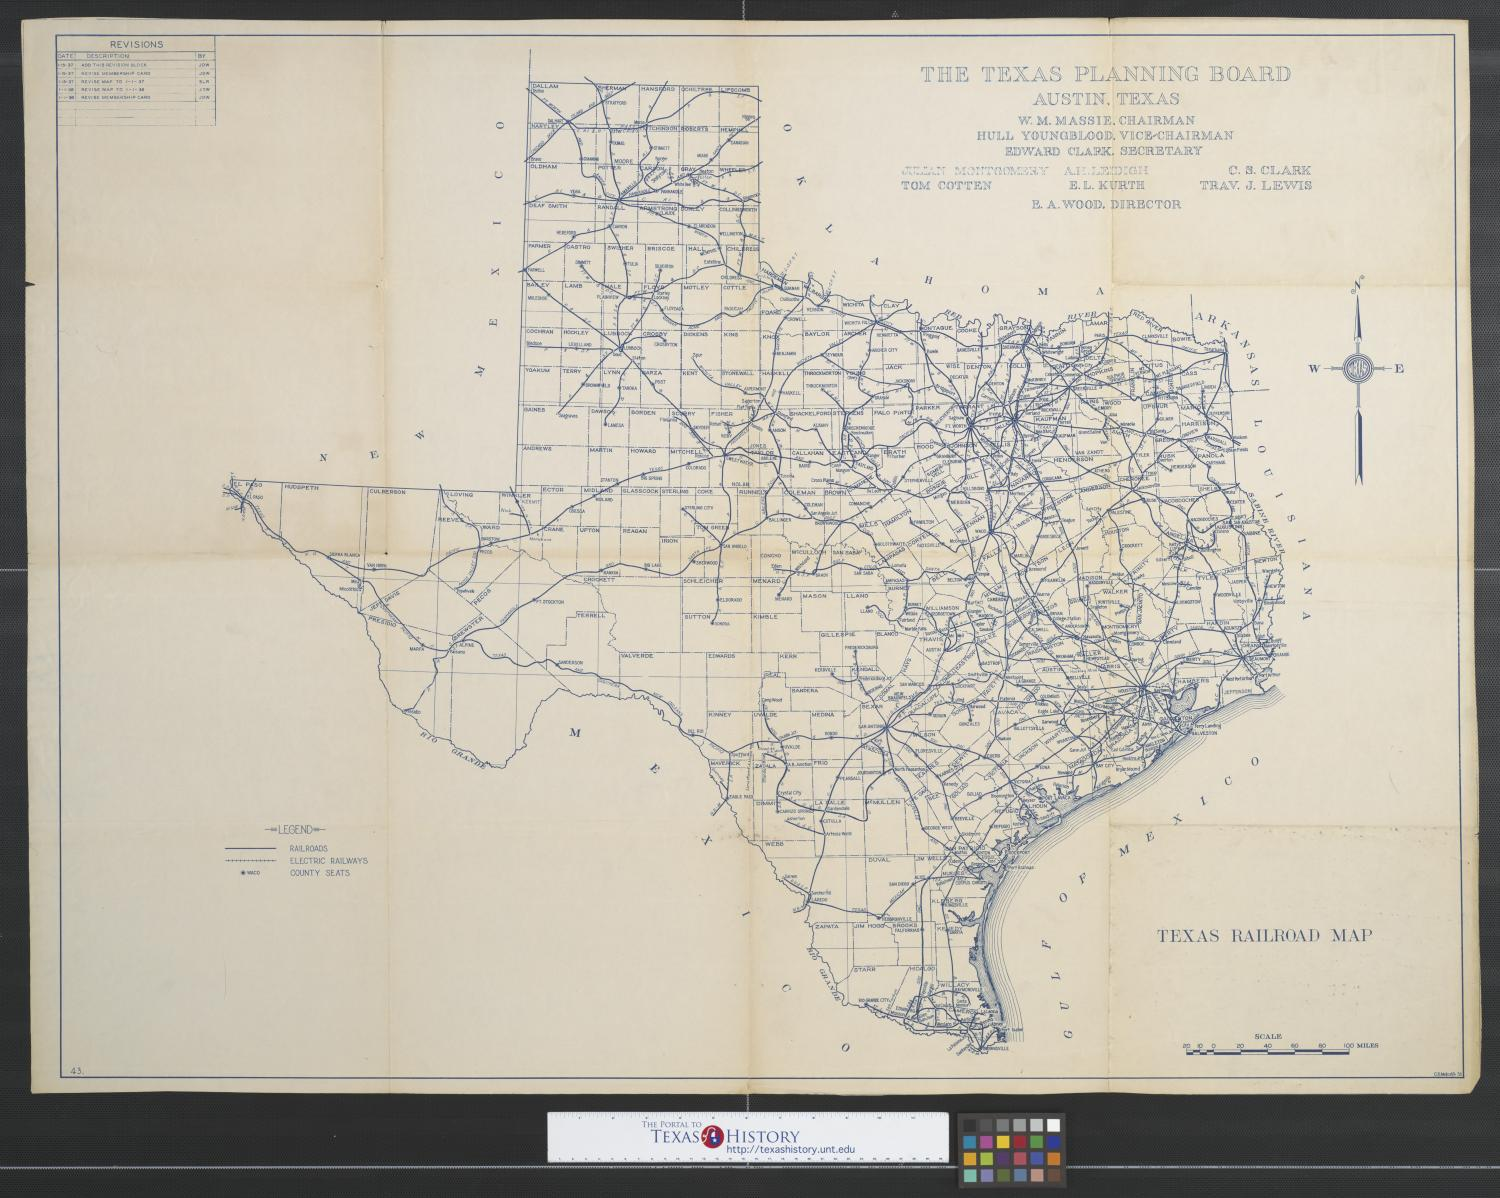 Map Of Texas Railroads.Texas Railroad Map The Portal To Texas History